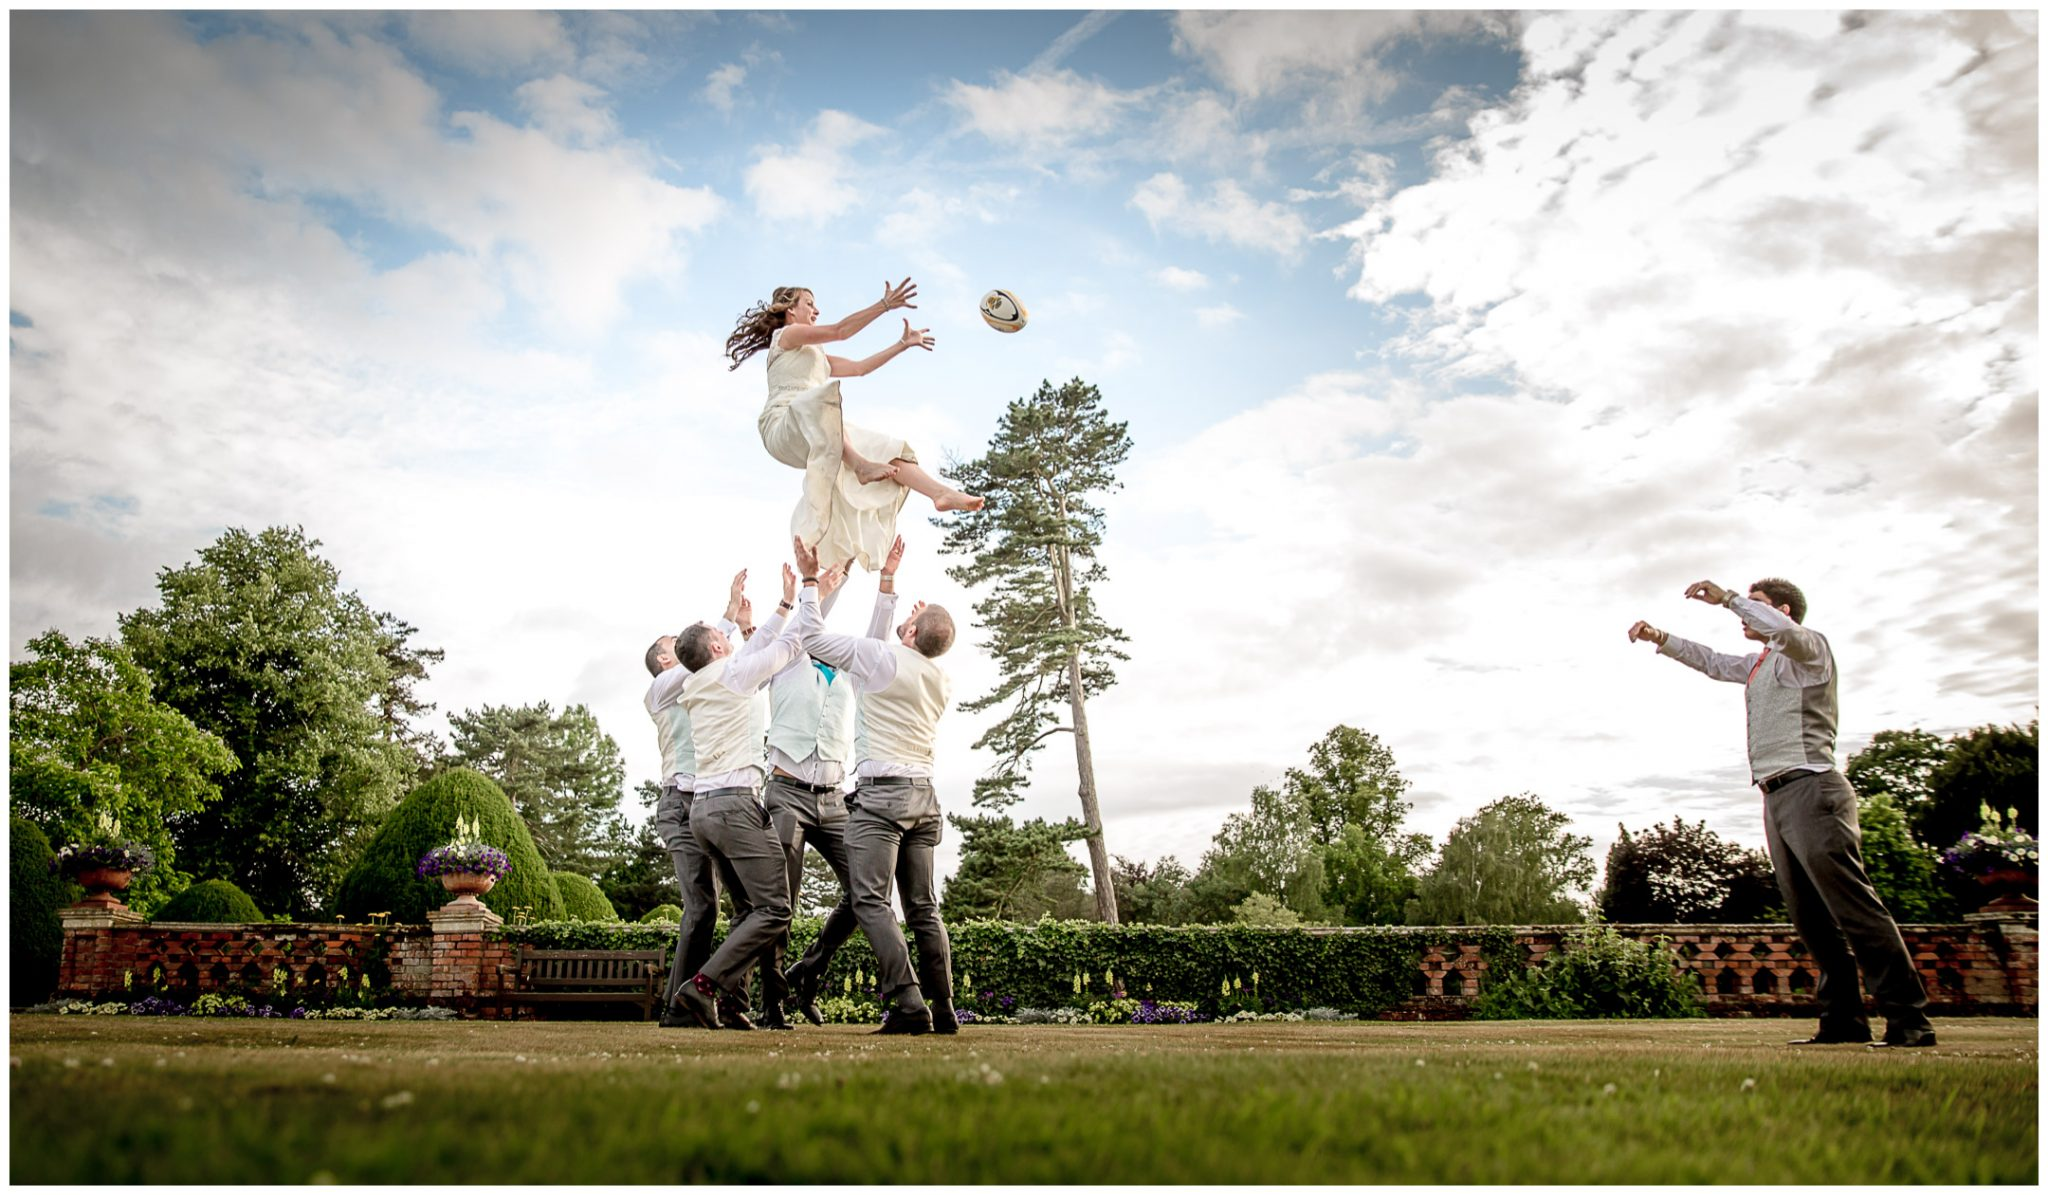 The bride is thrown into the air by the groomsmen playing rugby on the lawn of The Elvetham Hotel